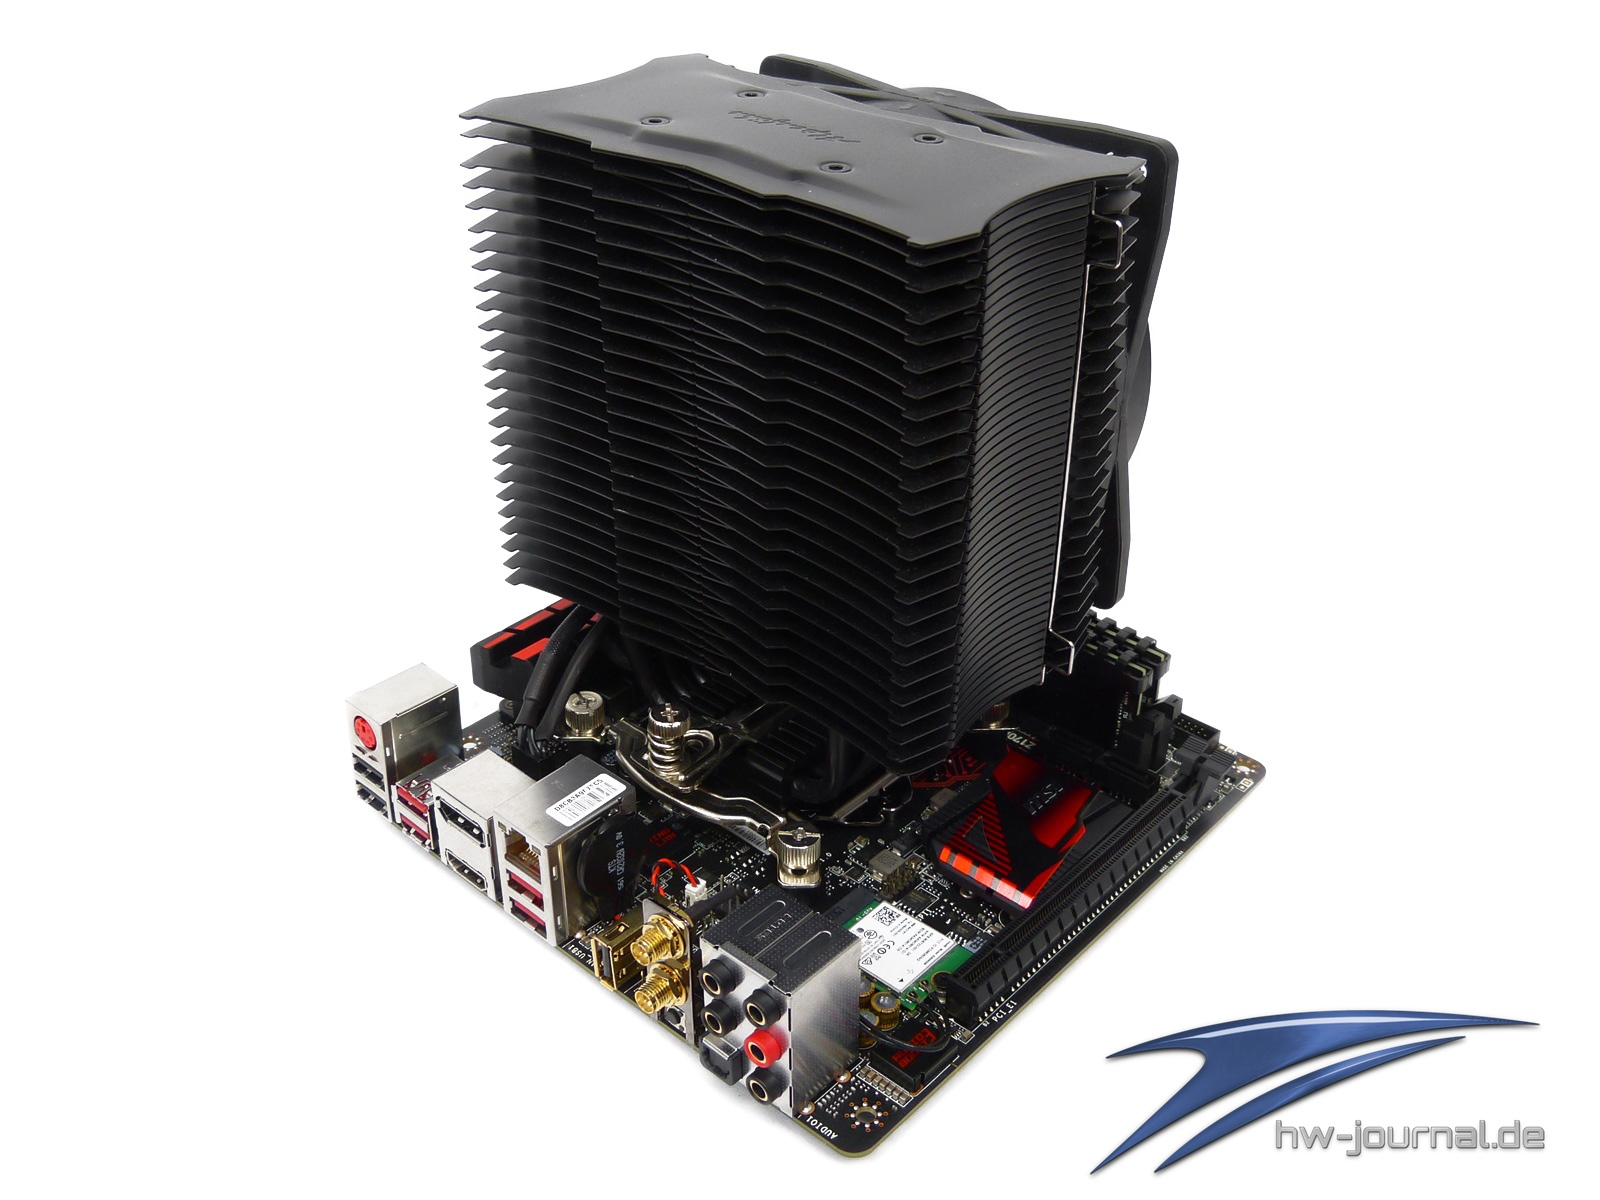 Test: MSI Z170I Gaming Pro AC - Hardware-Journal - Results from #3